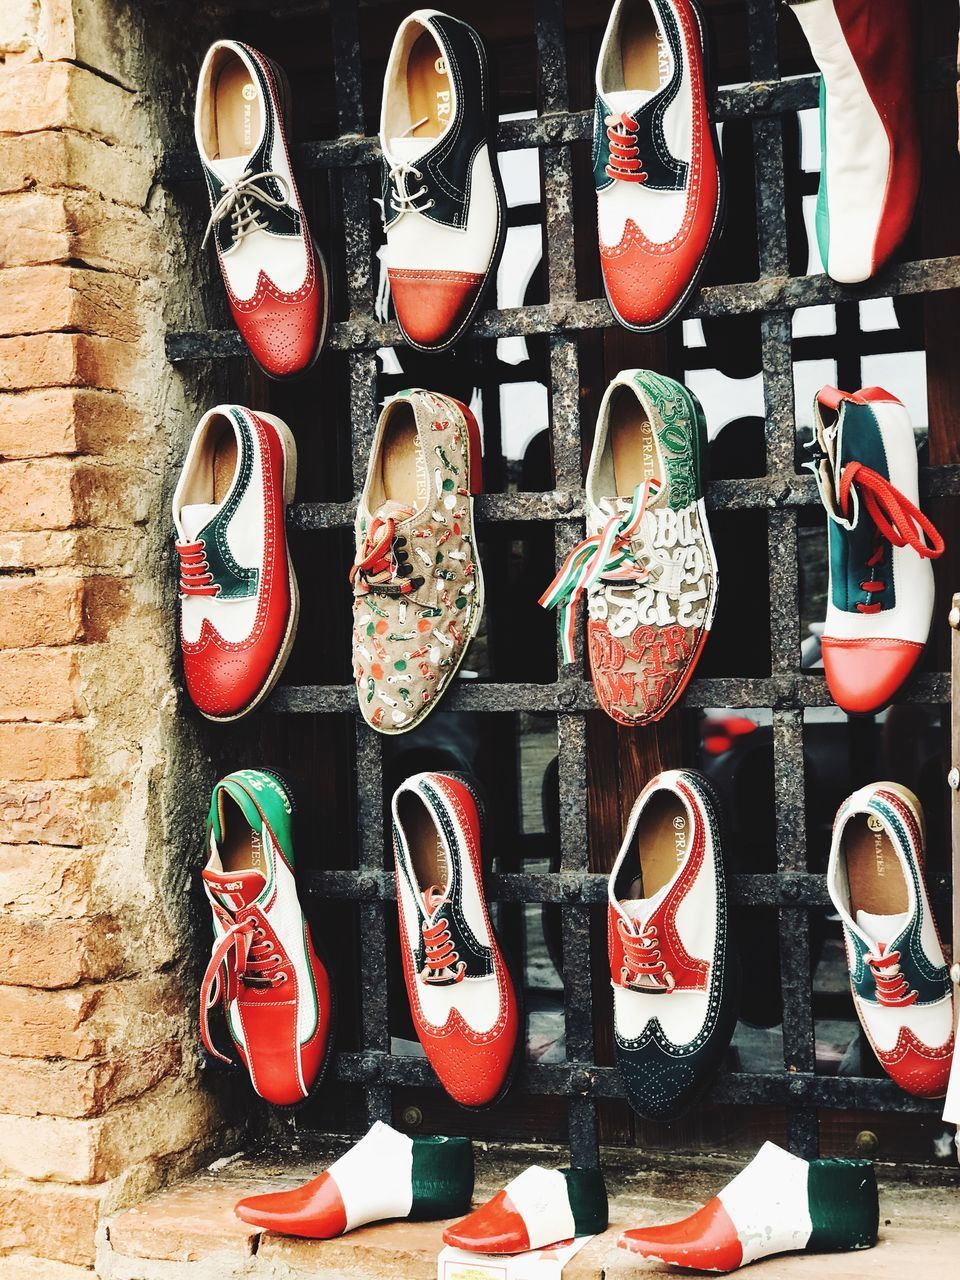 no people, choice, still life, arrangement, variation, shoe, large group of objects, for sale, red, retail, in a row, indoors, close-up, multi colored, day, fashion, order, pair, retail display, compatibility